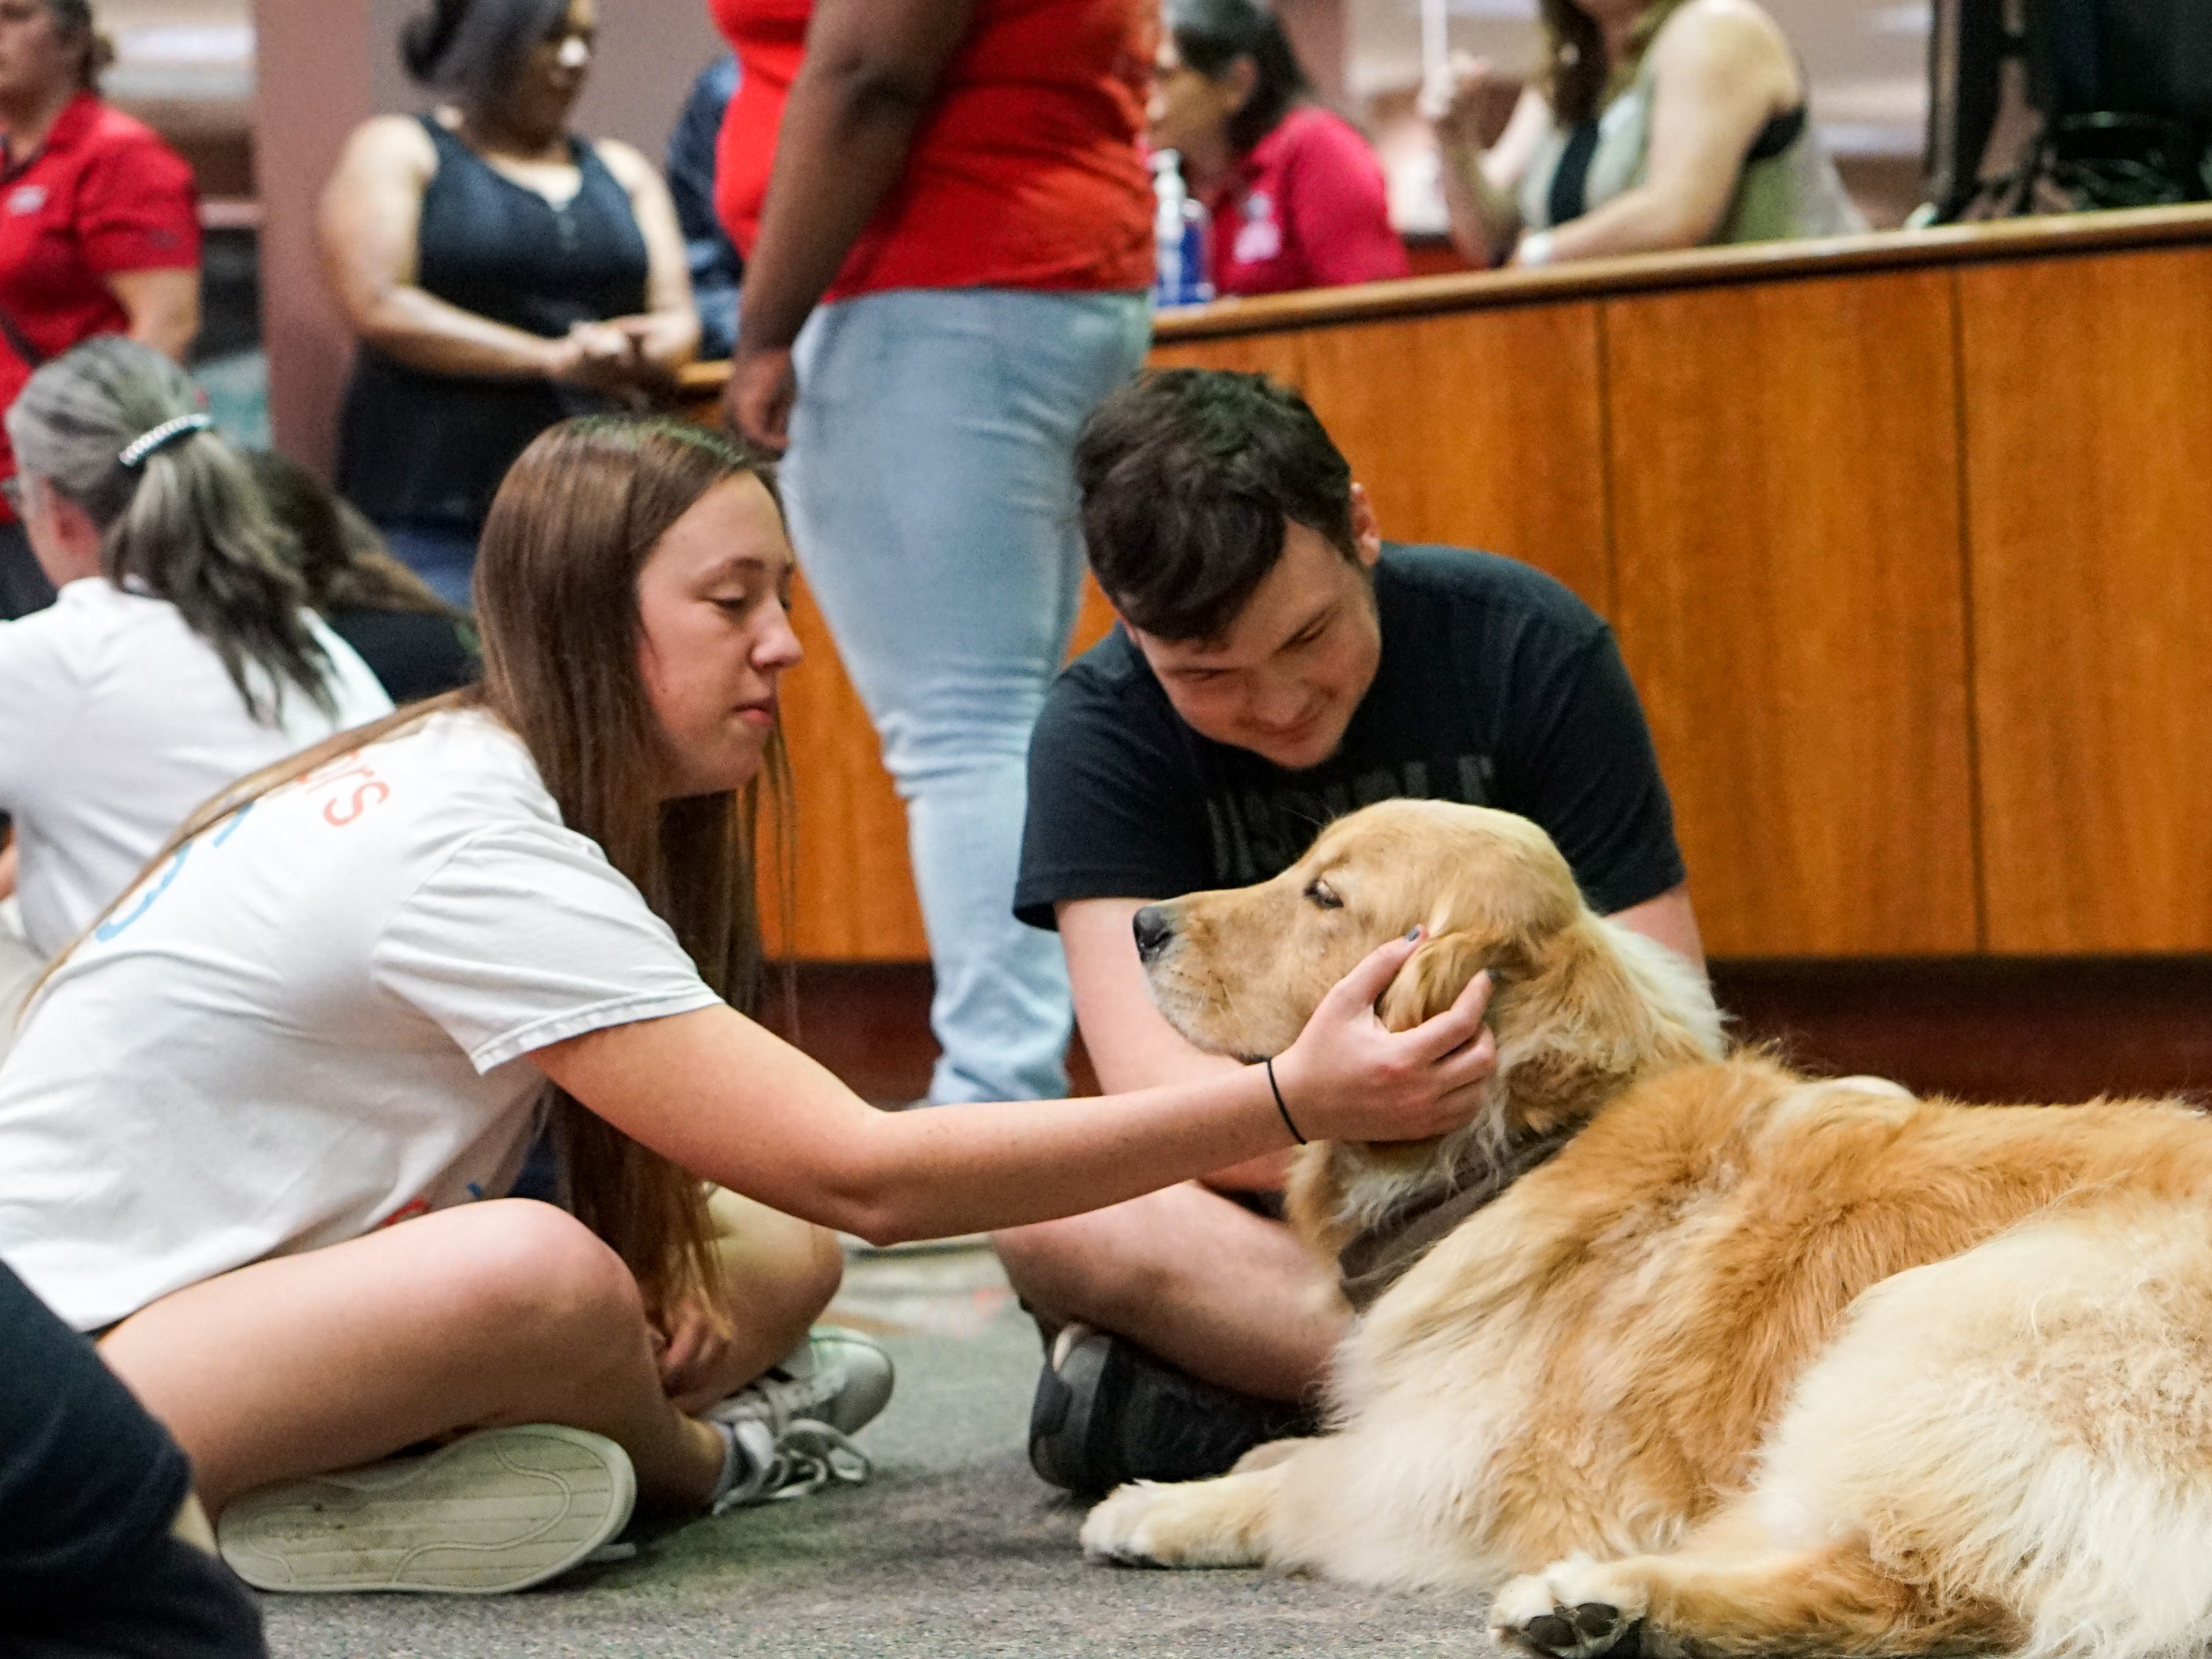 Students relieve stress by meeting and petting a therapy dog in the Edith Garland Dupré Library Wednesday, May 8, 2019. The University of Louisiana at Lafayette helps students to relieve stress during finals week by bringing therapy animals, to the library as part of Stress Relief Week. The therapy dogs are provided by Pet Partners of Acadiana, a non-profit organization with registered therapy animals, including birds, miniature horses, rabbits and  llamas.